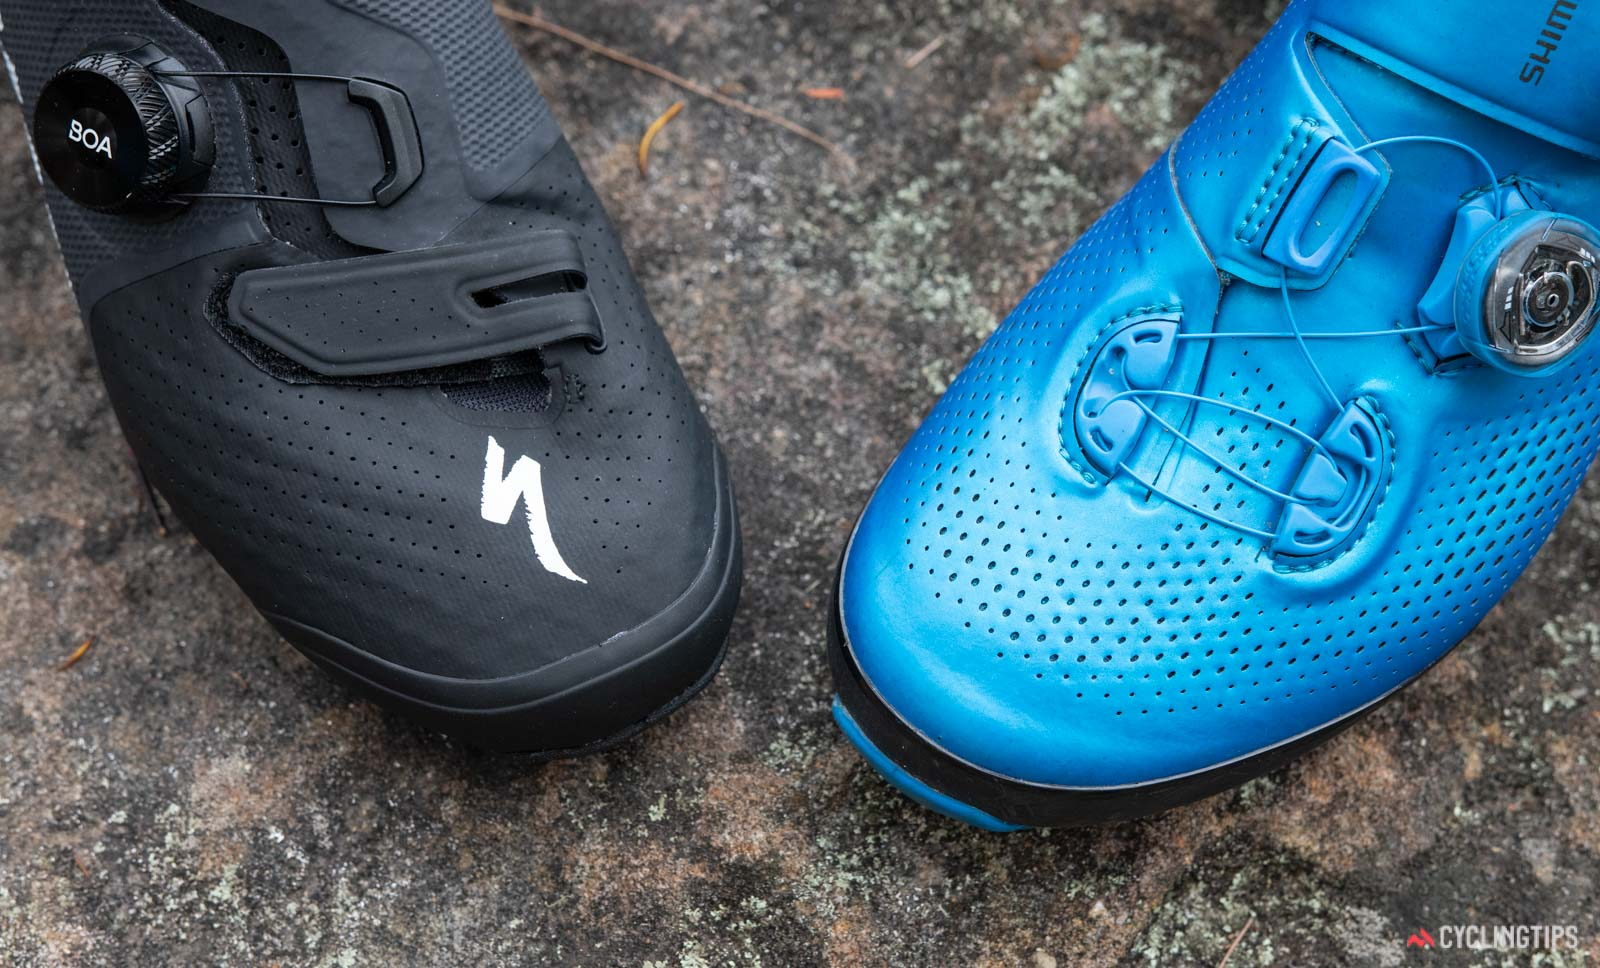 Shimano S-Phyre XC9 vs Specialized S-Works Recon SPD shoes